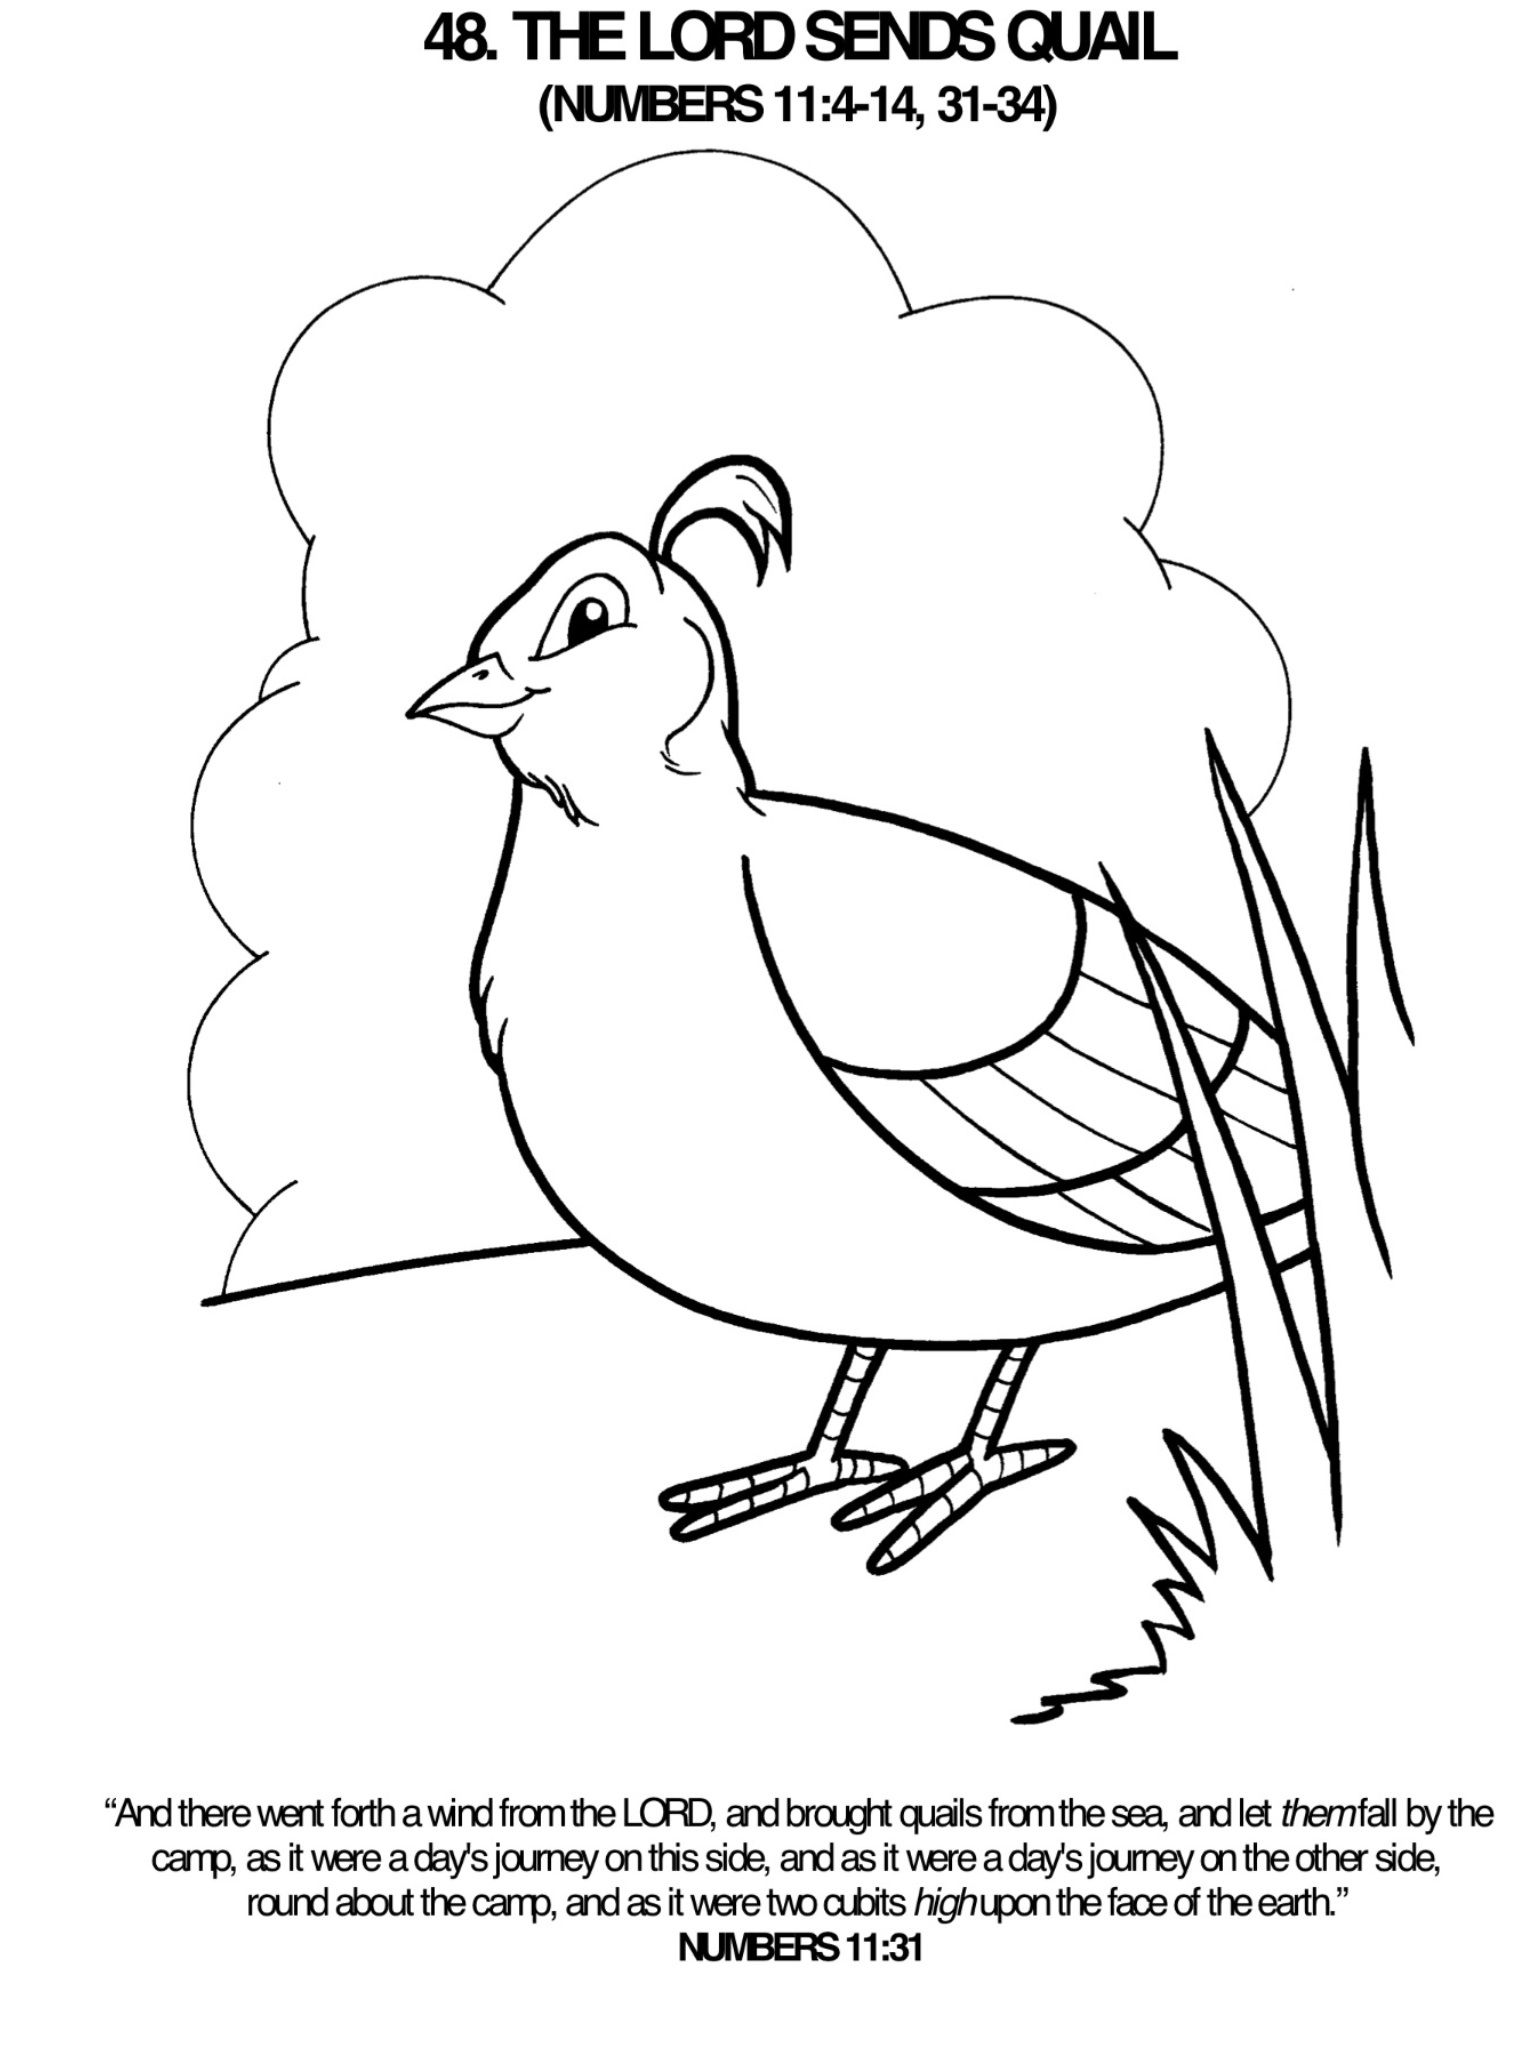 Lord sends a quail coloring page